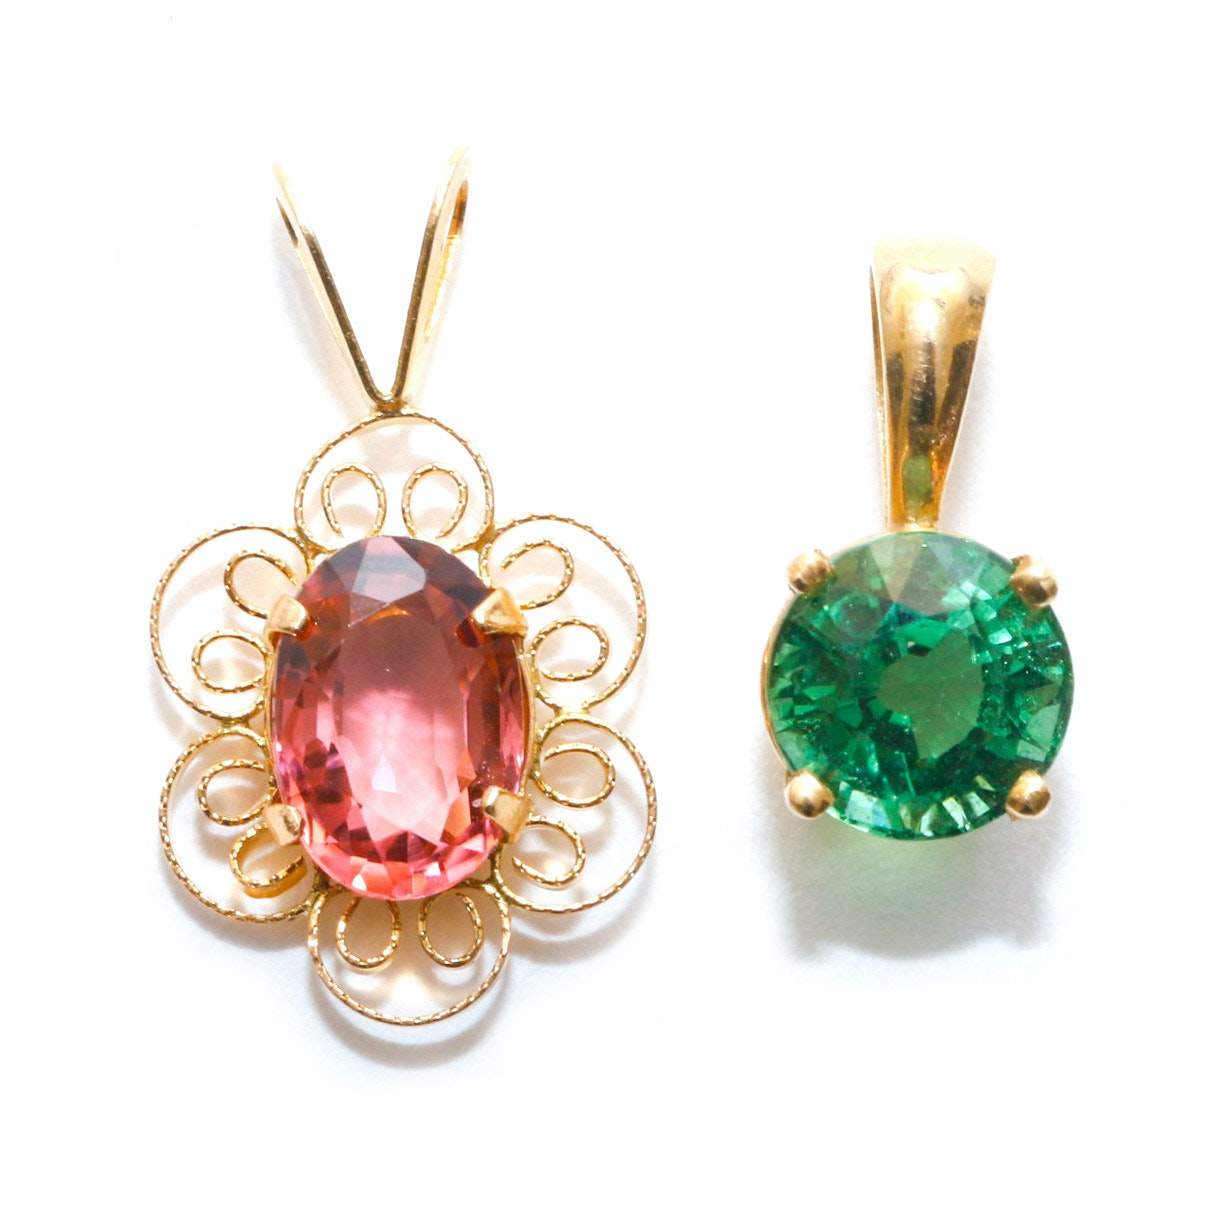 Pair of 14K Yellow Gold Pink and Green Tourmaline Pendants